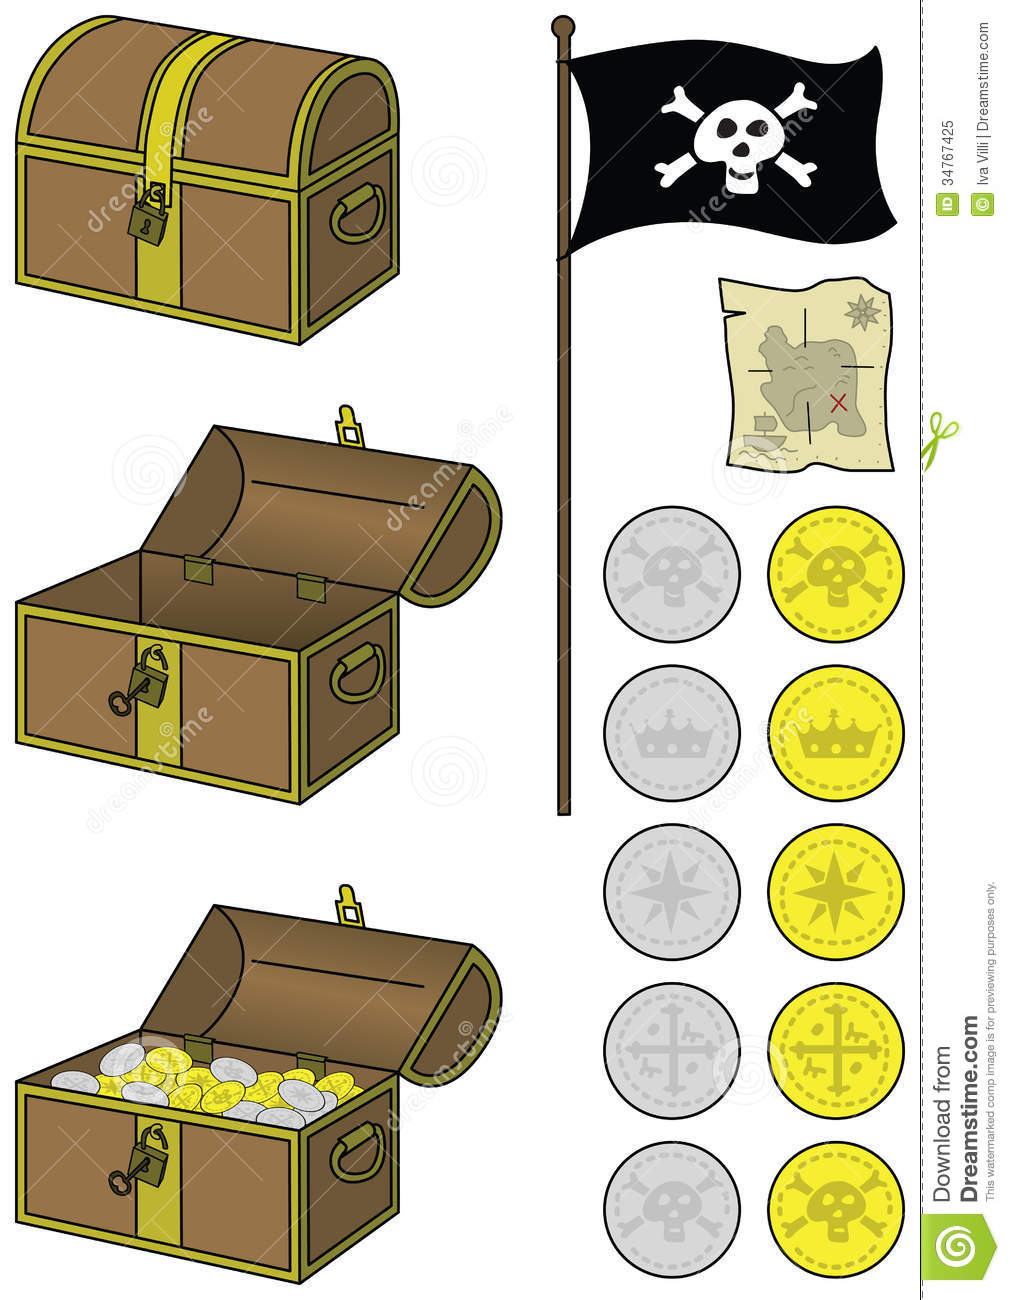 Pirate Treasure Royalty Free Stock Photo   Image  34767425